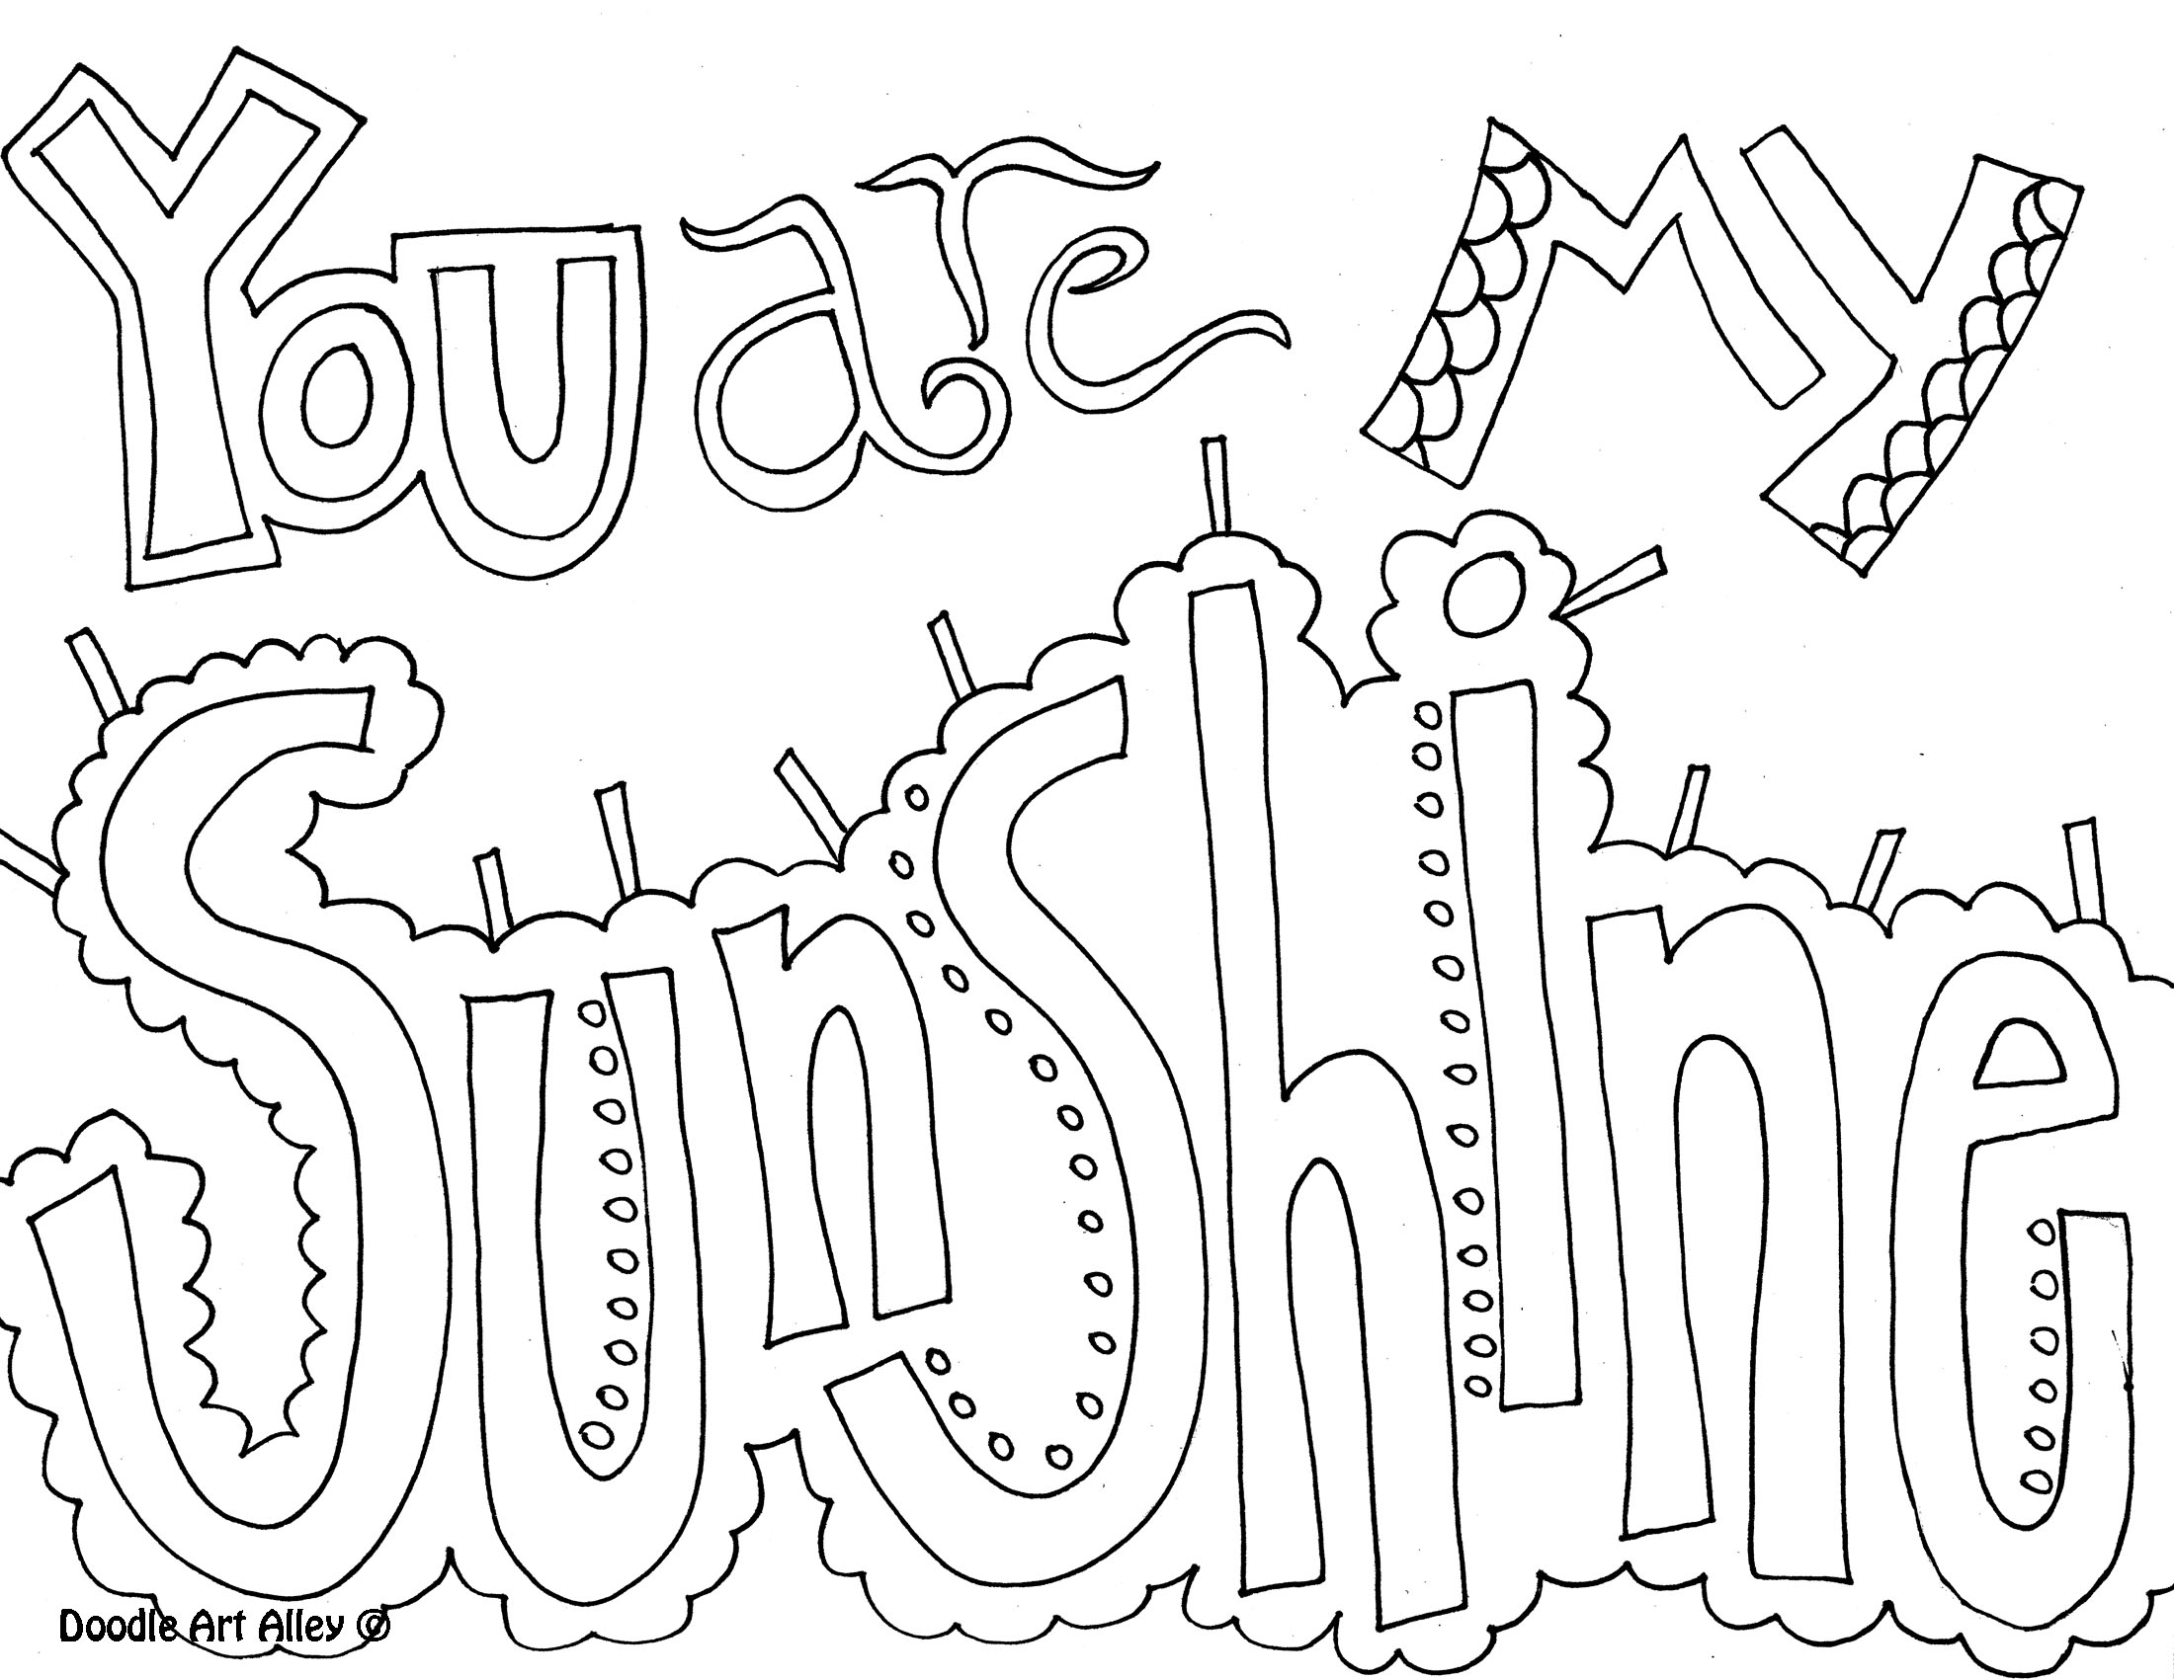 quote coloring page you are my sunshine - Friends Quotes Coloring Pages